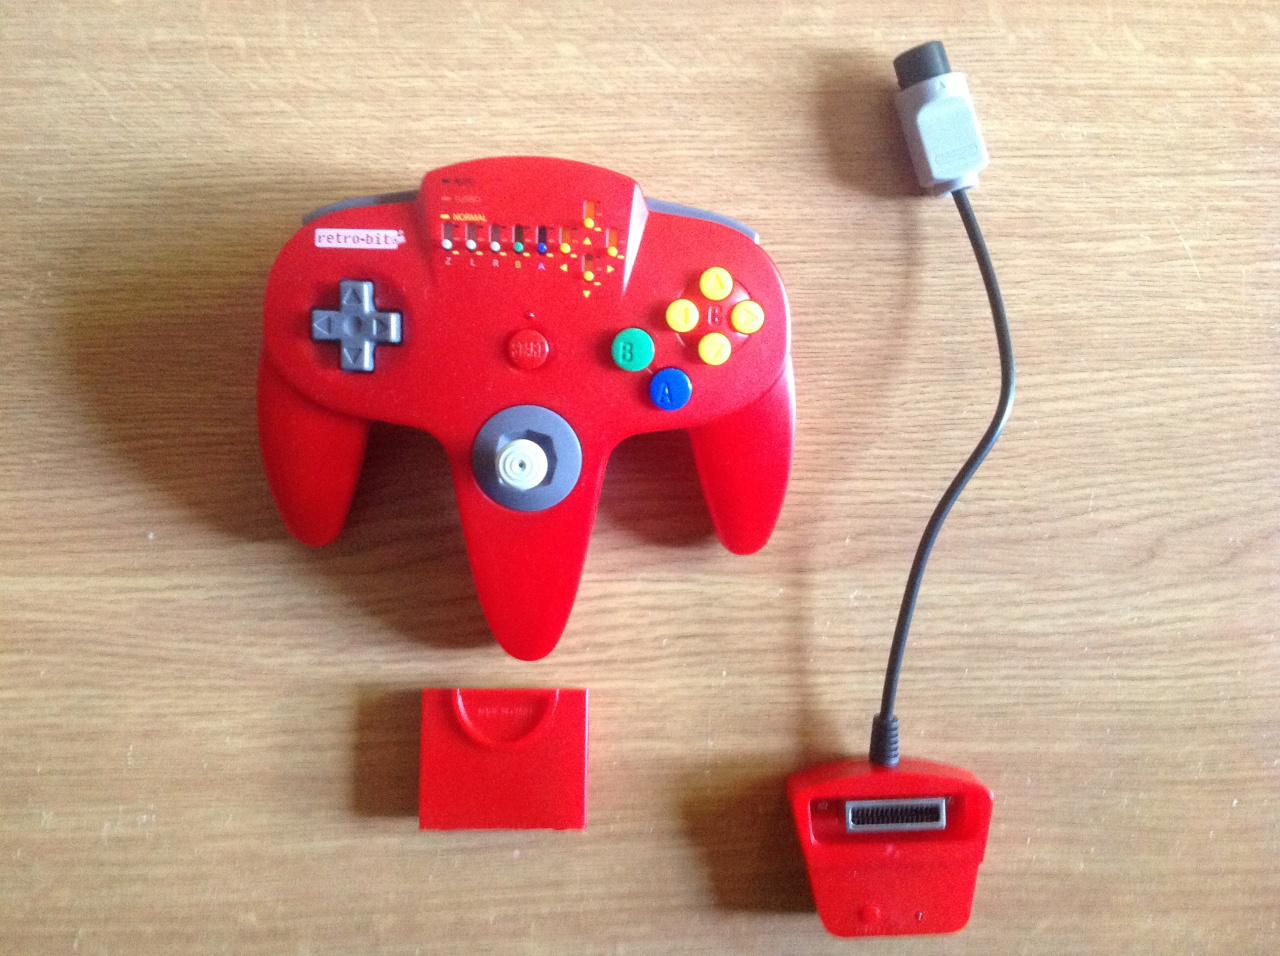 Wireless N64 Controller Schematics Data Wiring Diagrams Diagram Hardware Review Super Retro 64 Nintendo Life For Raspberry Pie